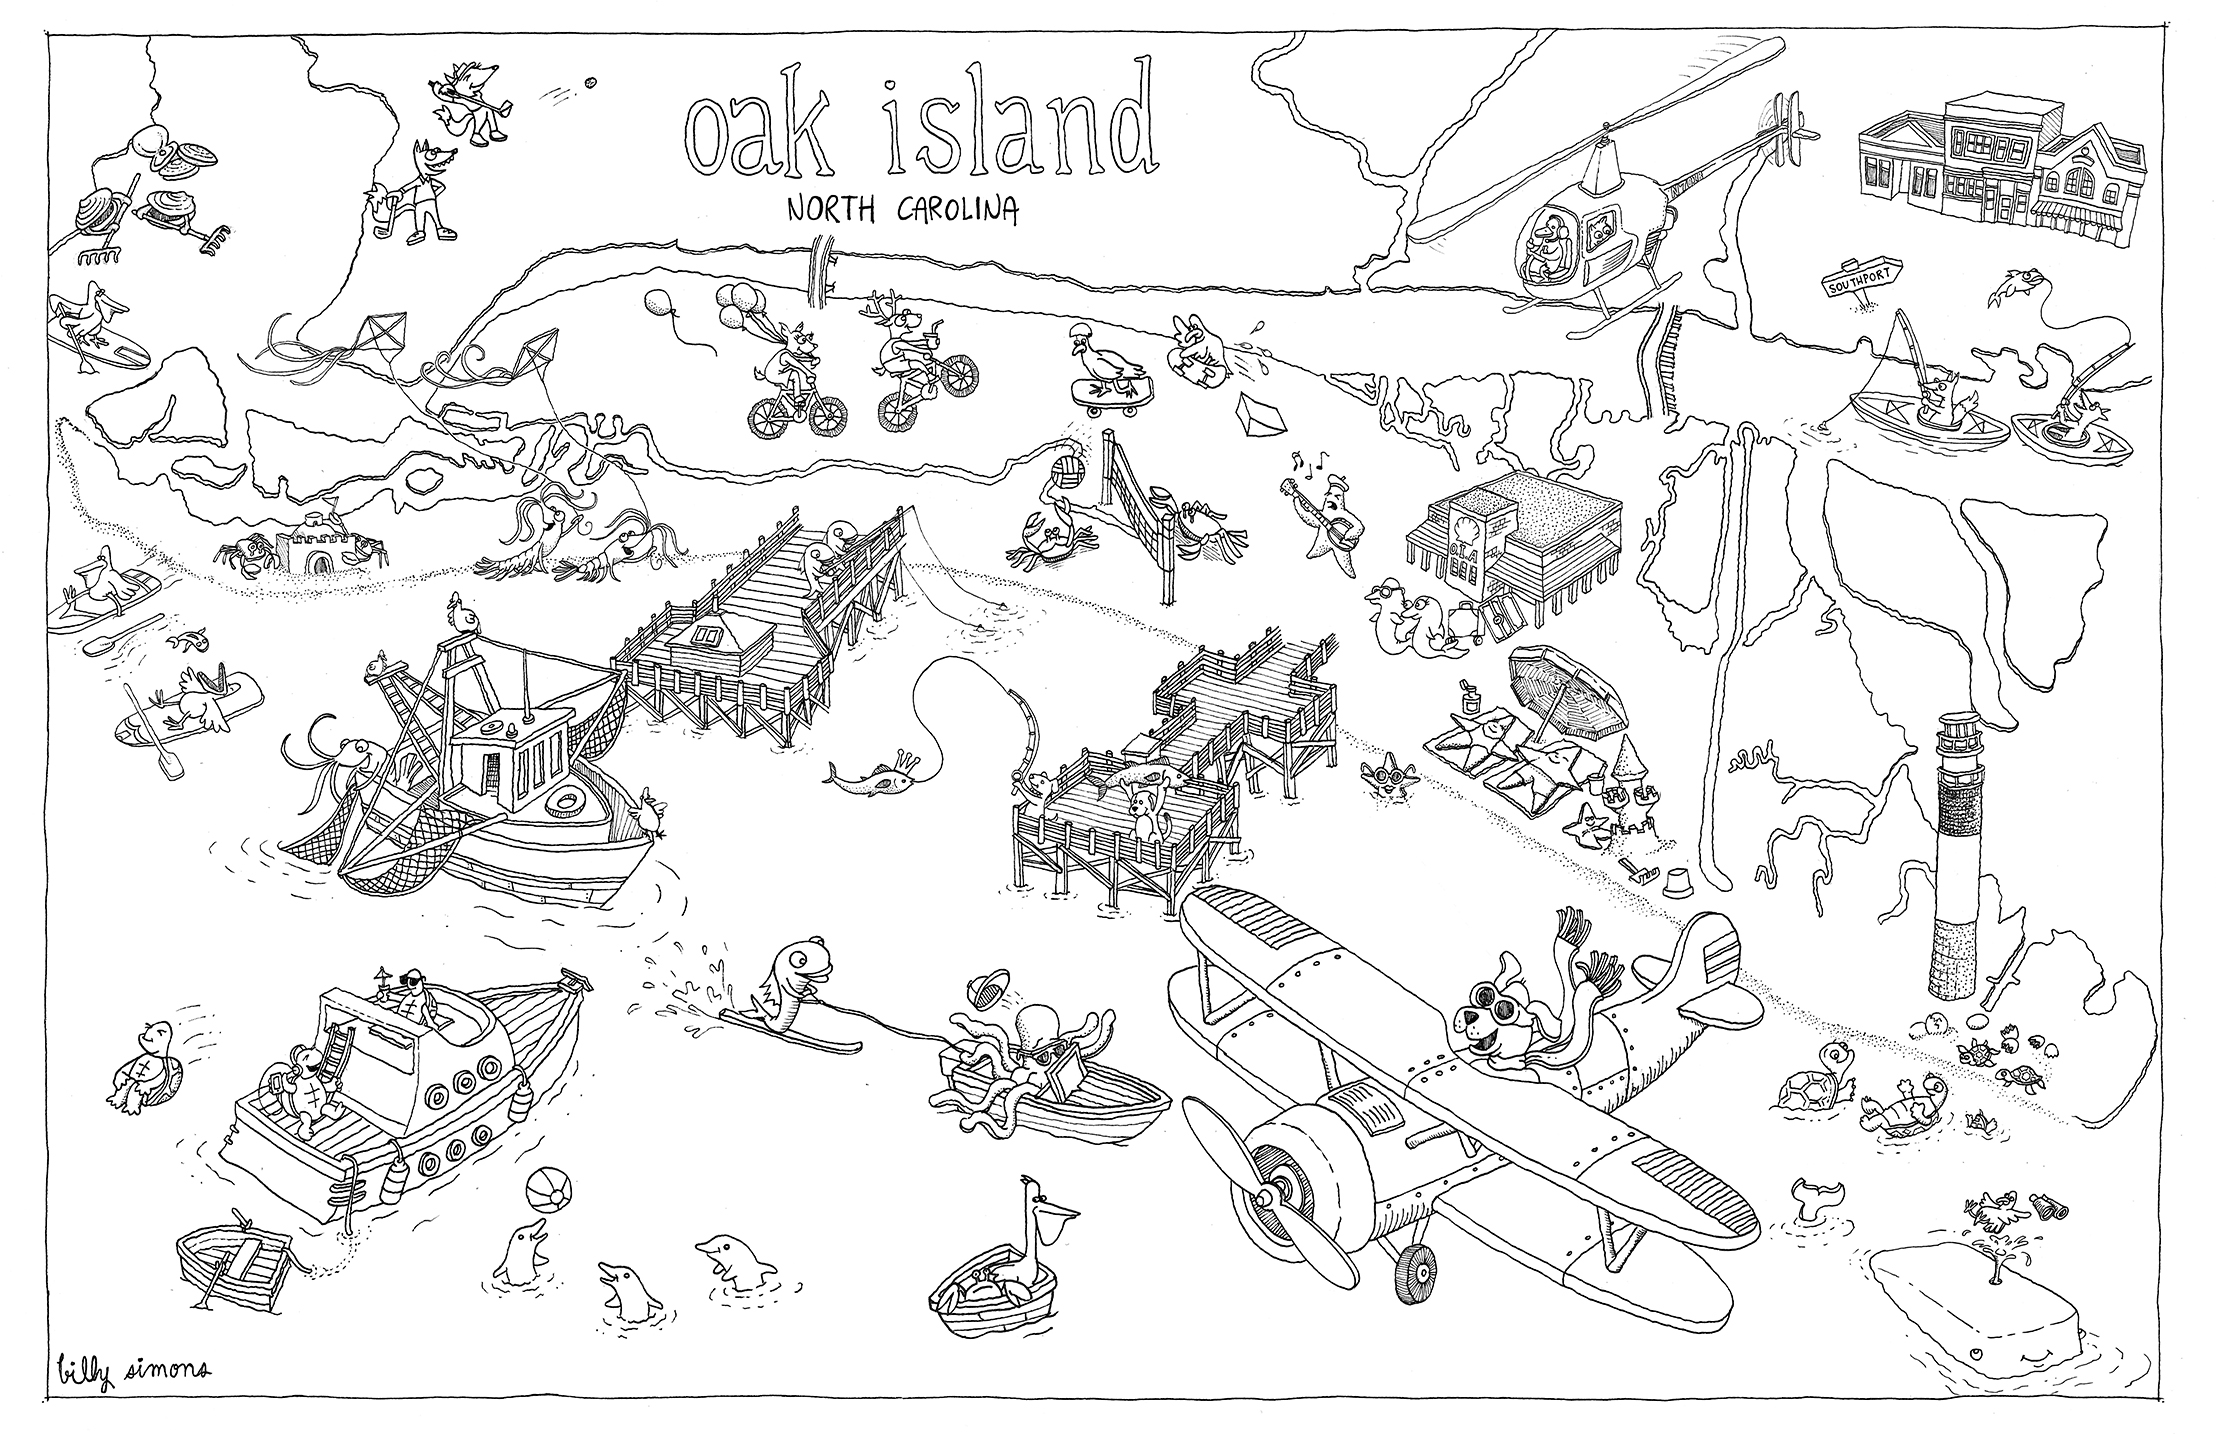 billy simons oak island map draw final